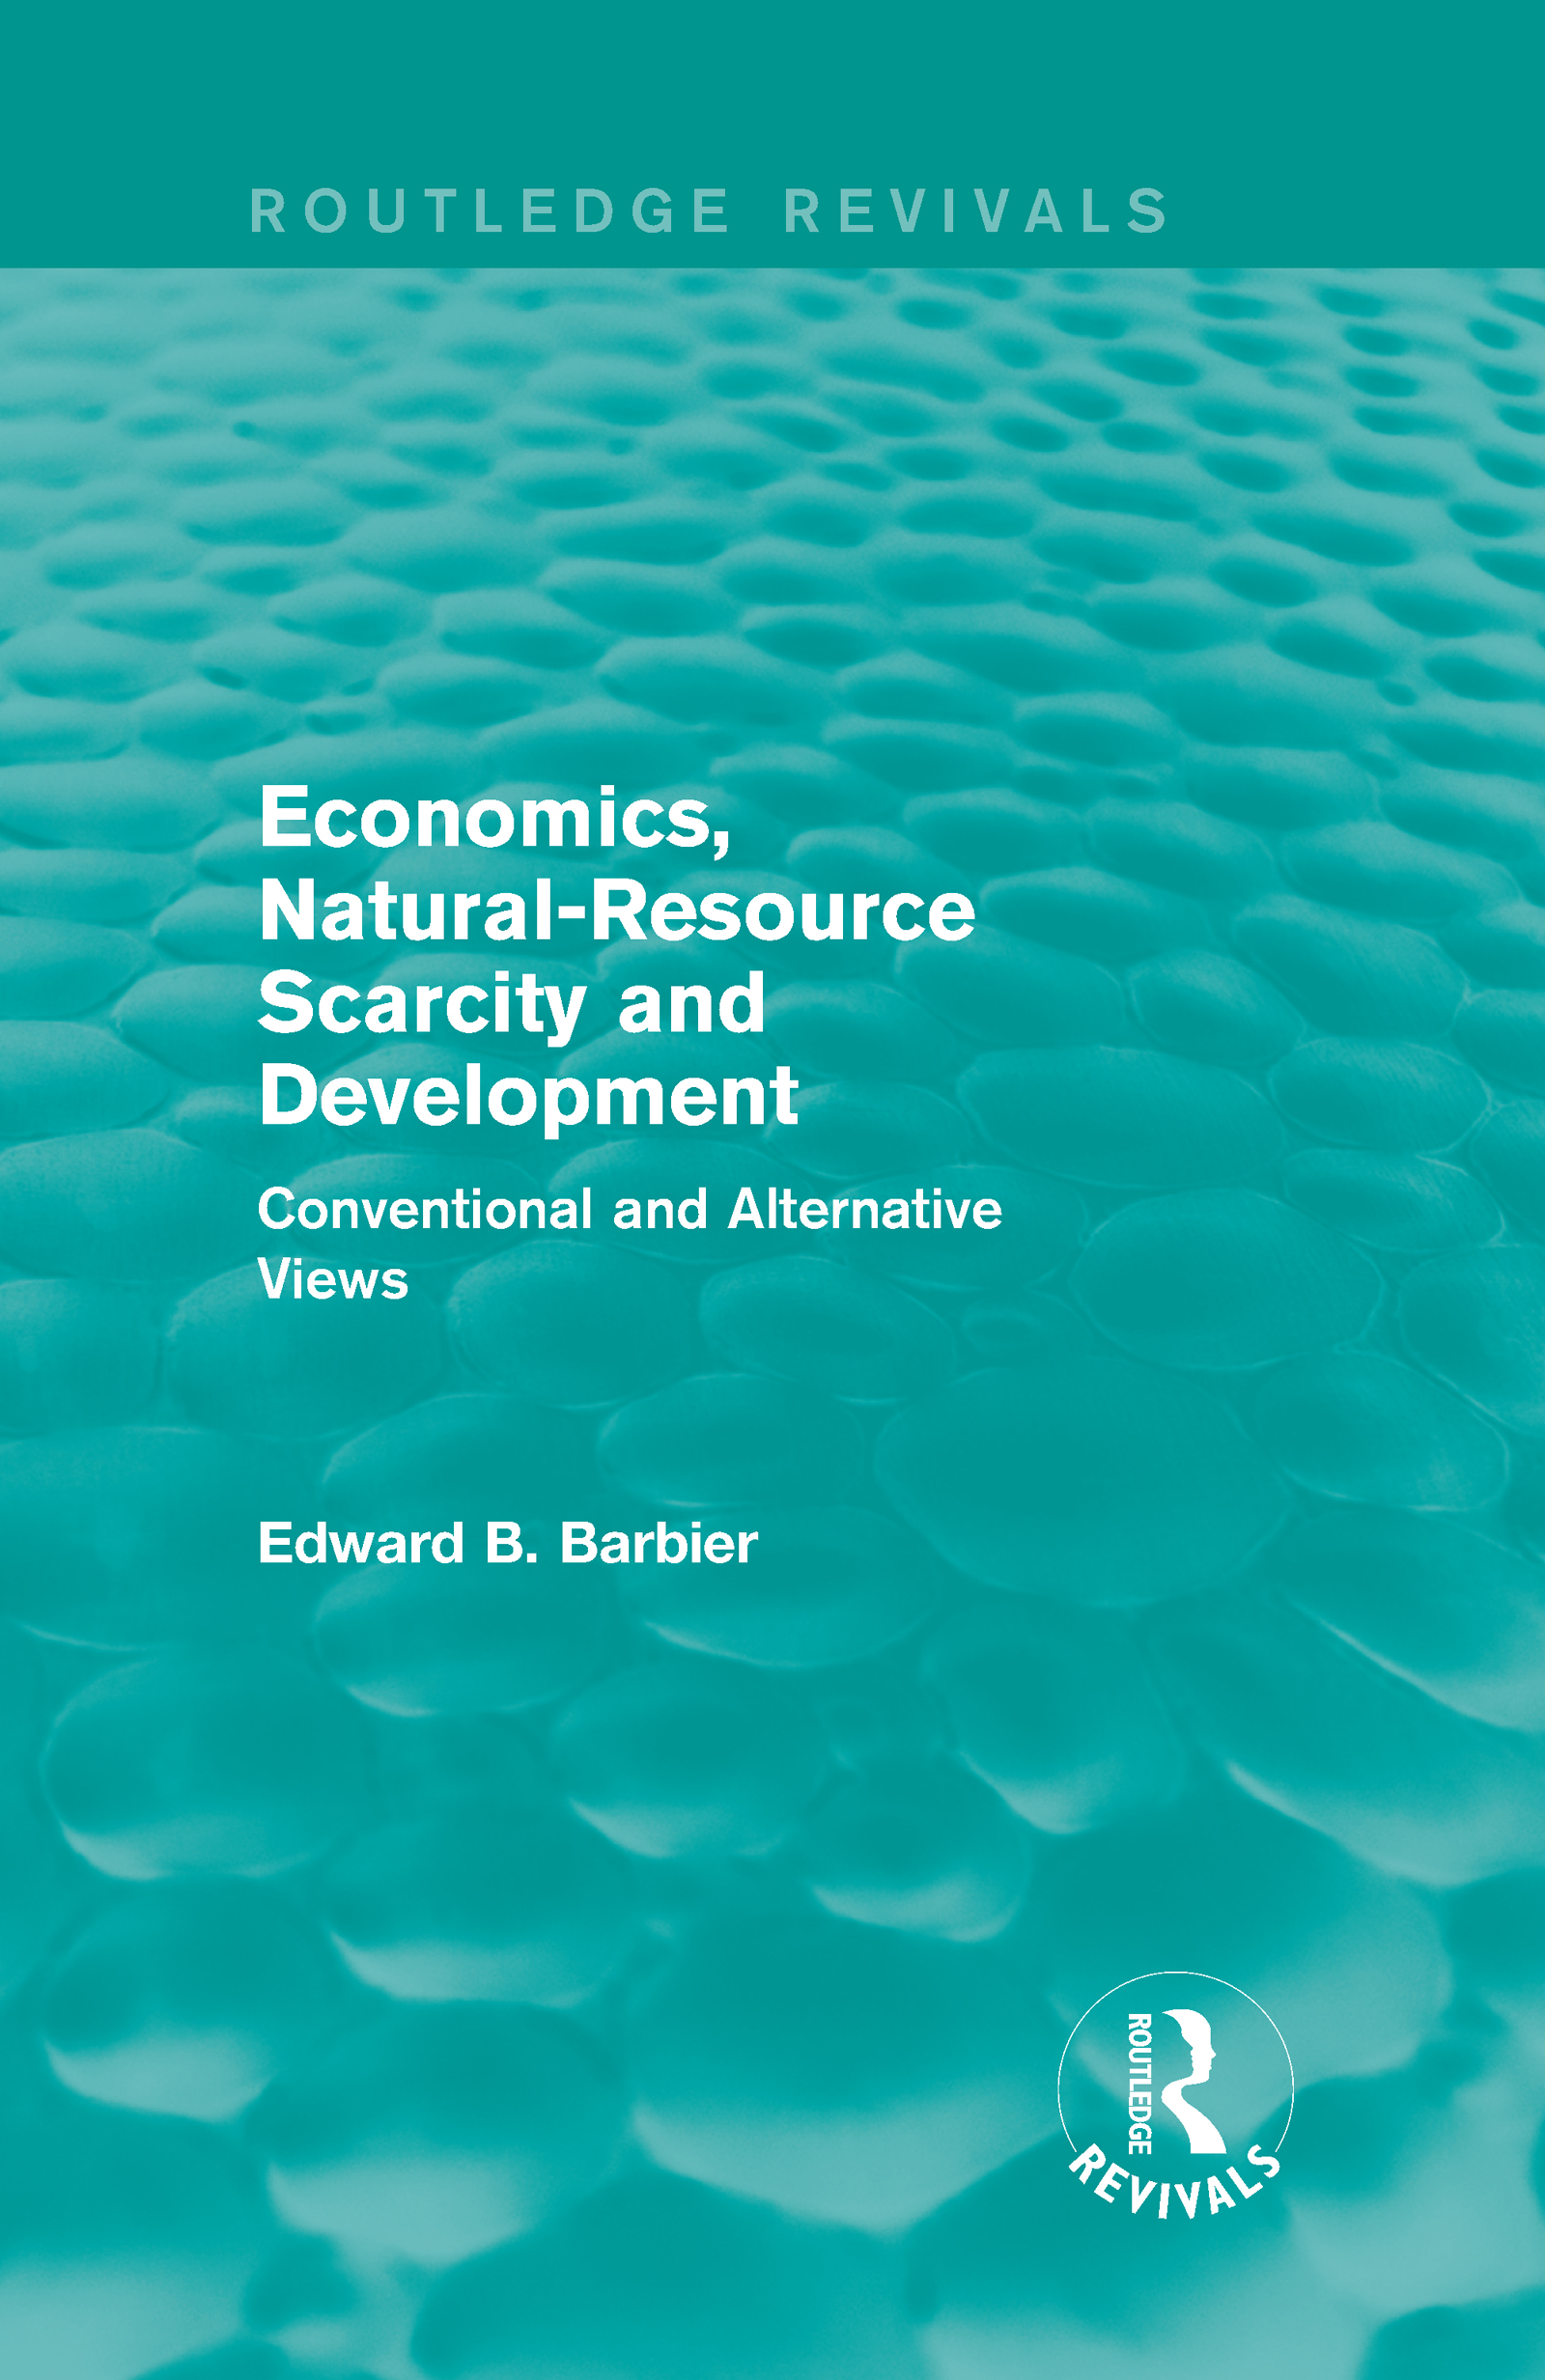 Economics, Natural-Resource Scarcity and Development (Routledge Revivals): Conventional and Alternative Views (Hardback) book cover